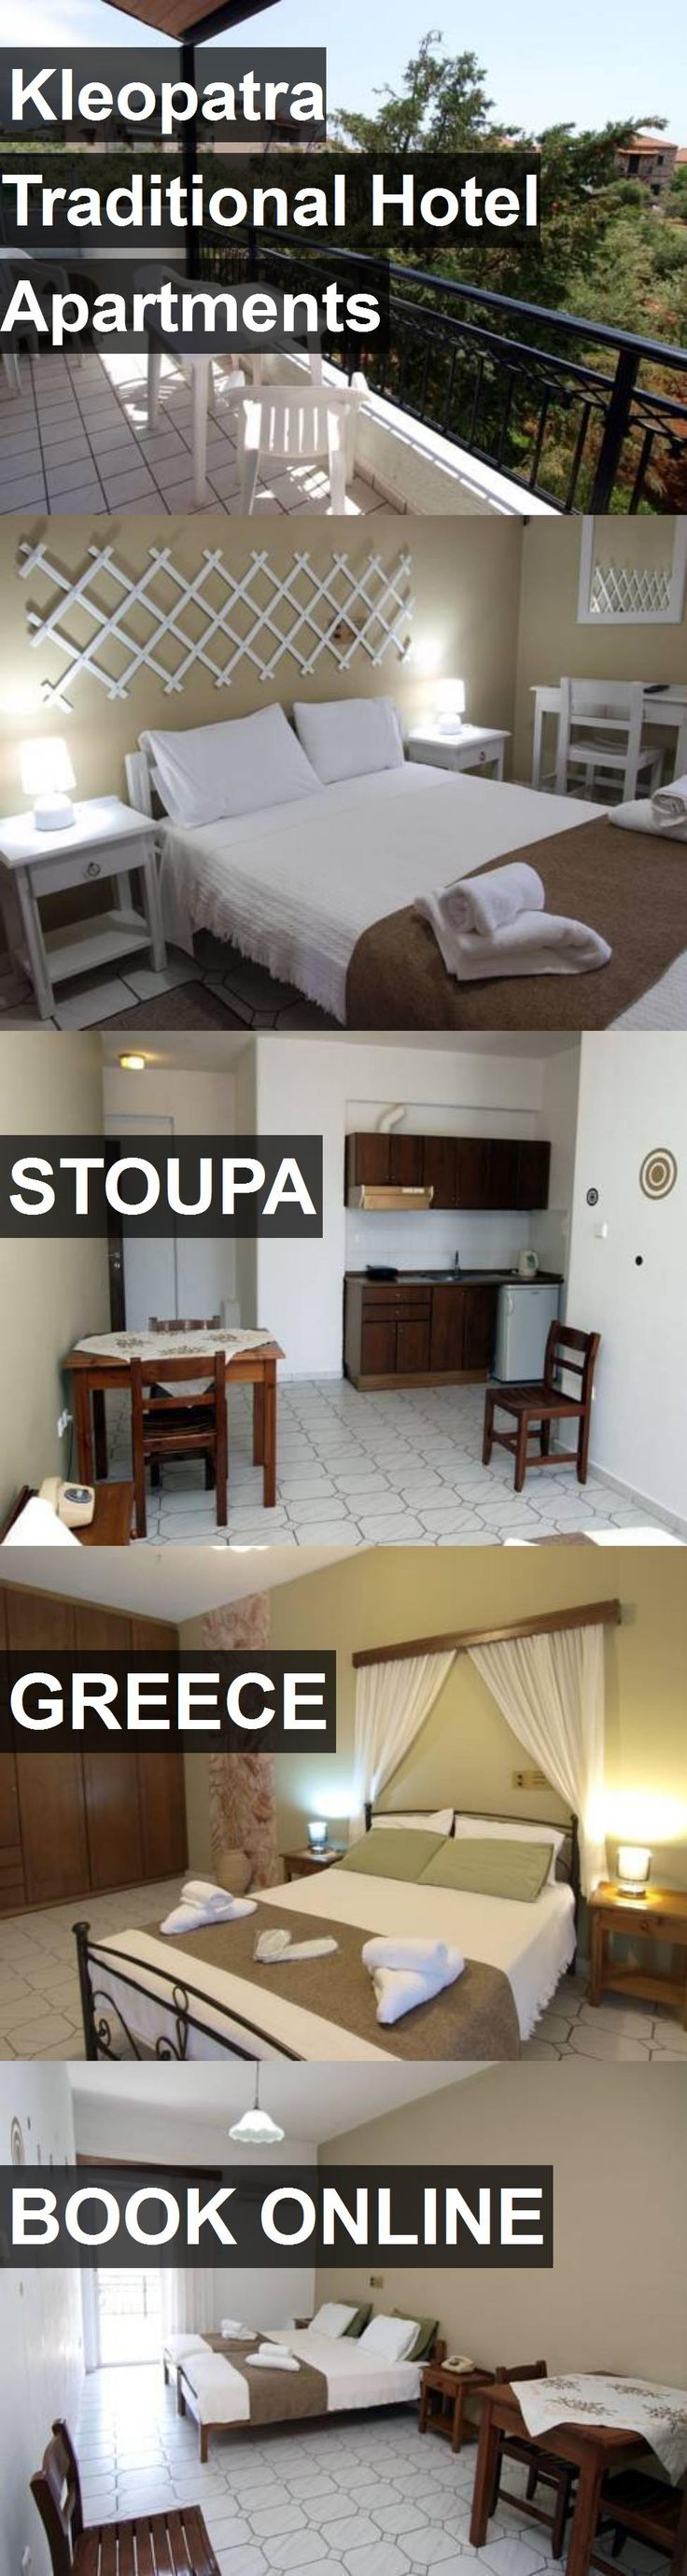 Kleopatra Traditional Hotel Apartments in Stoupa, Greece. For more information, photos, reviews and best prices please follow the link. #Greece #Stoupa #travel #vacation #hotel #apartment